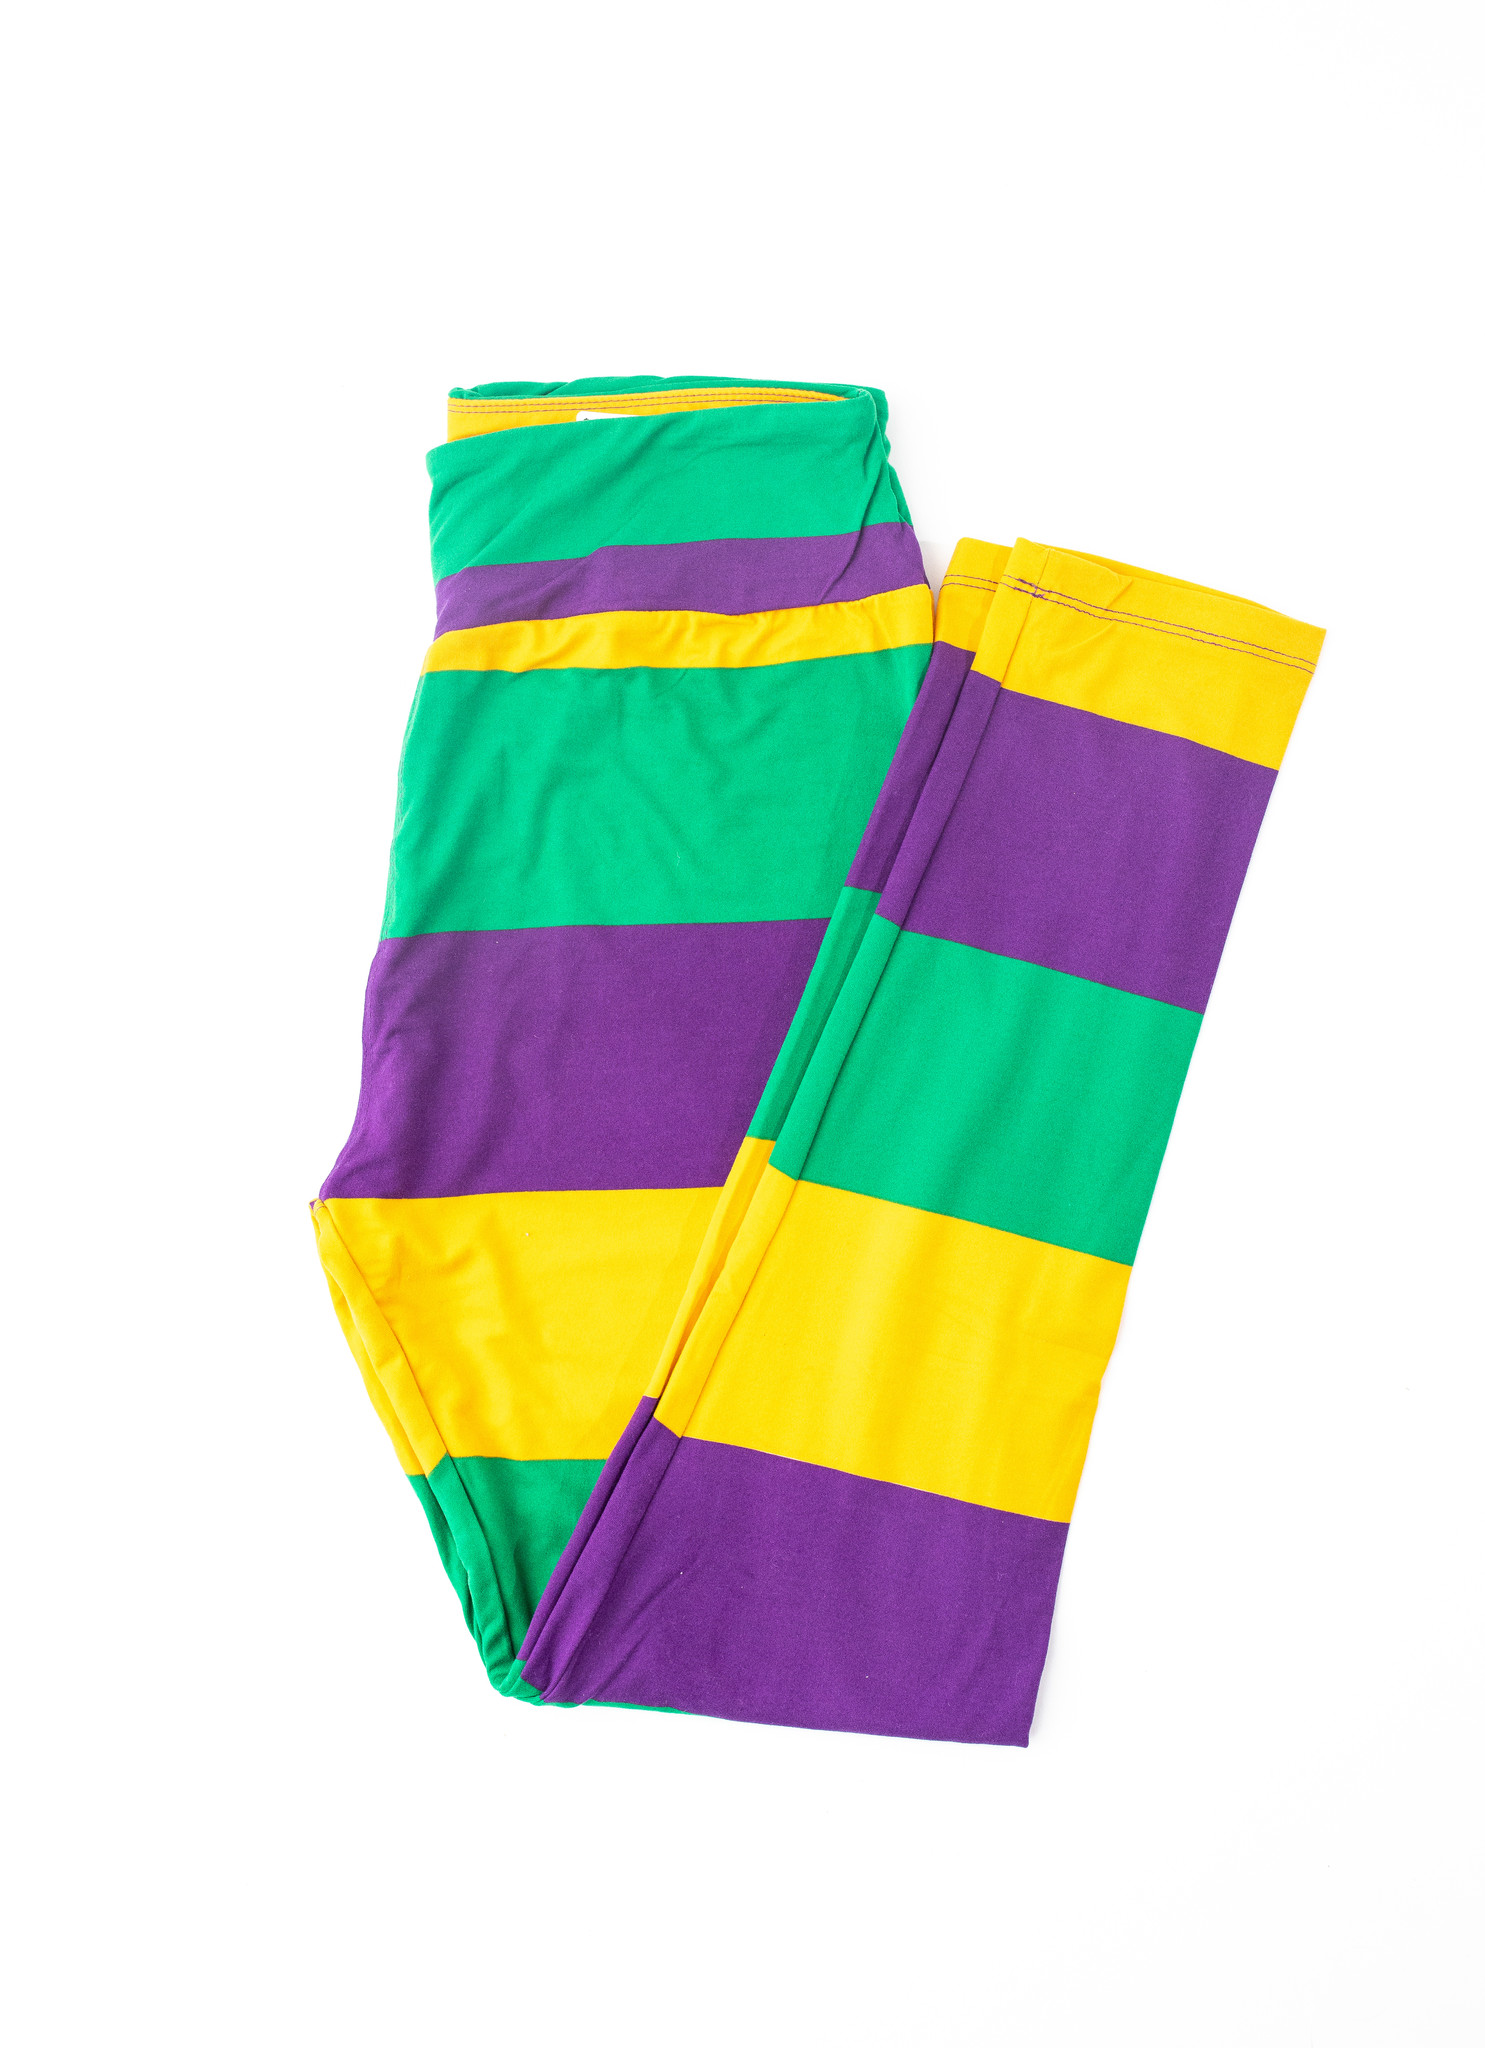 Mardi Gras Stripe Leggings, Curvy